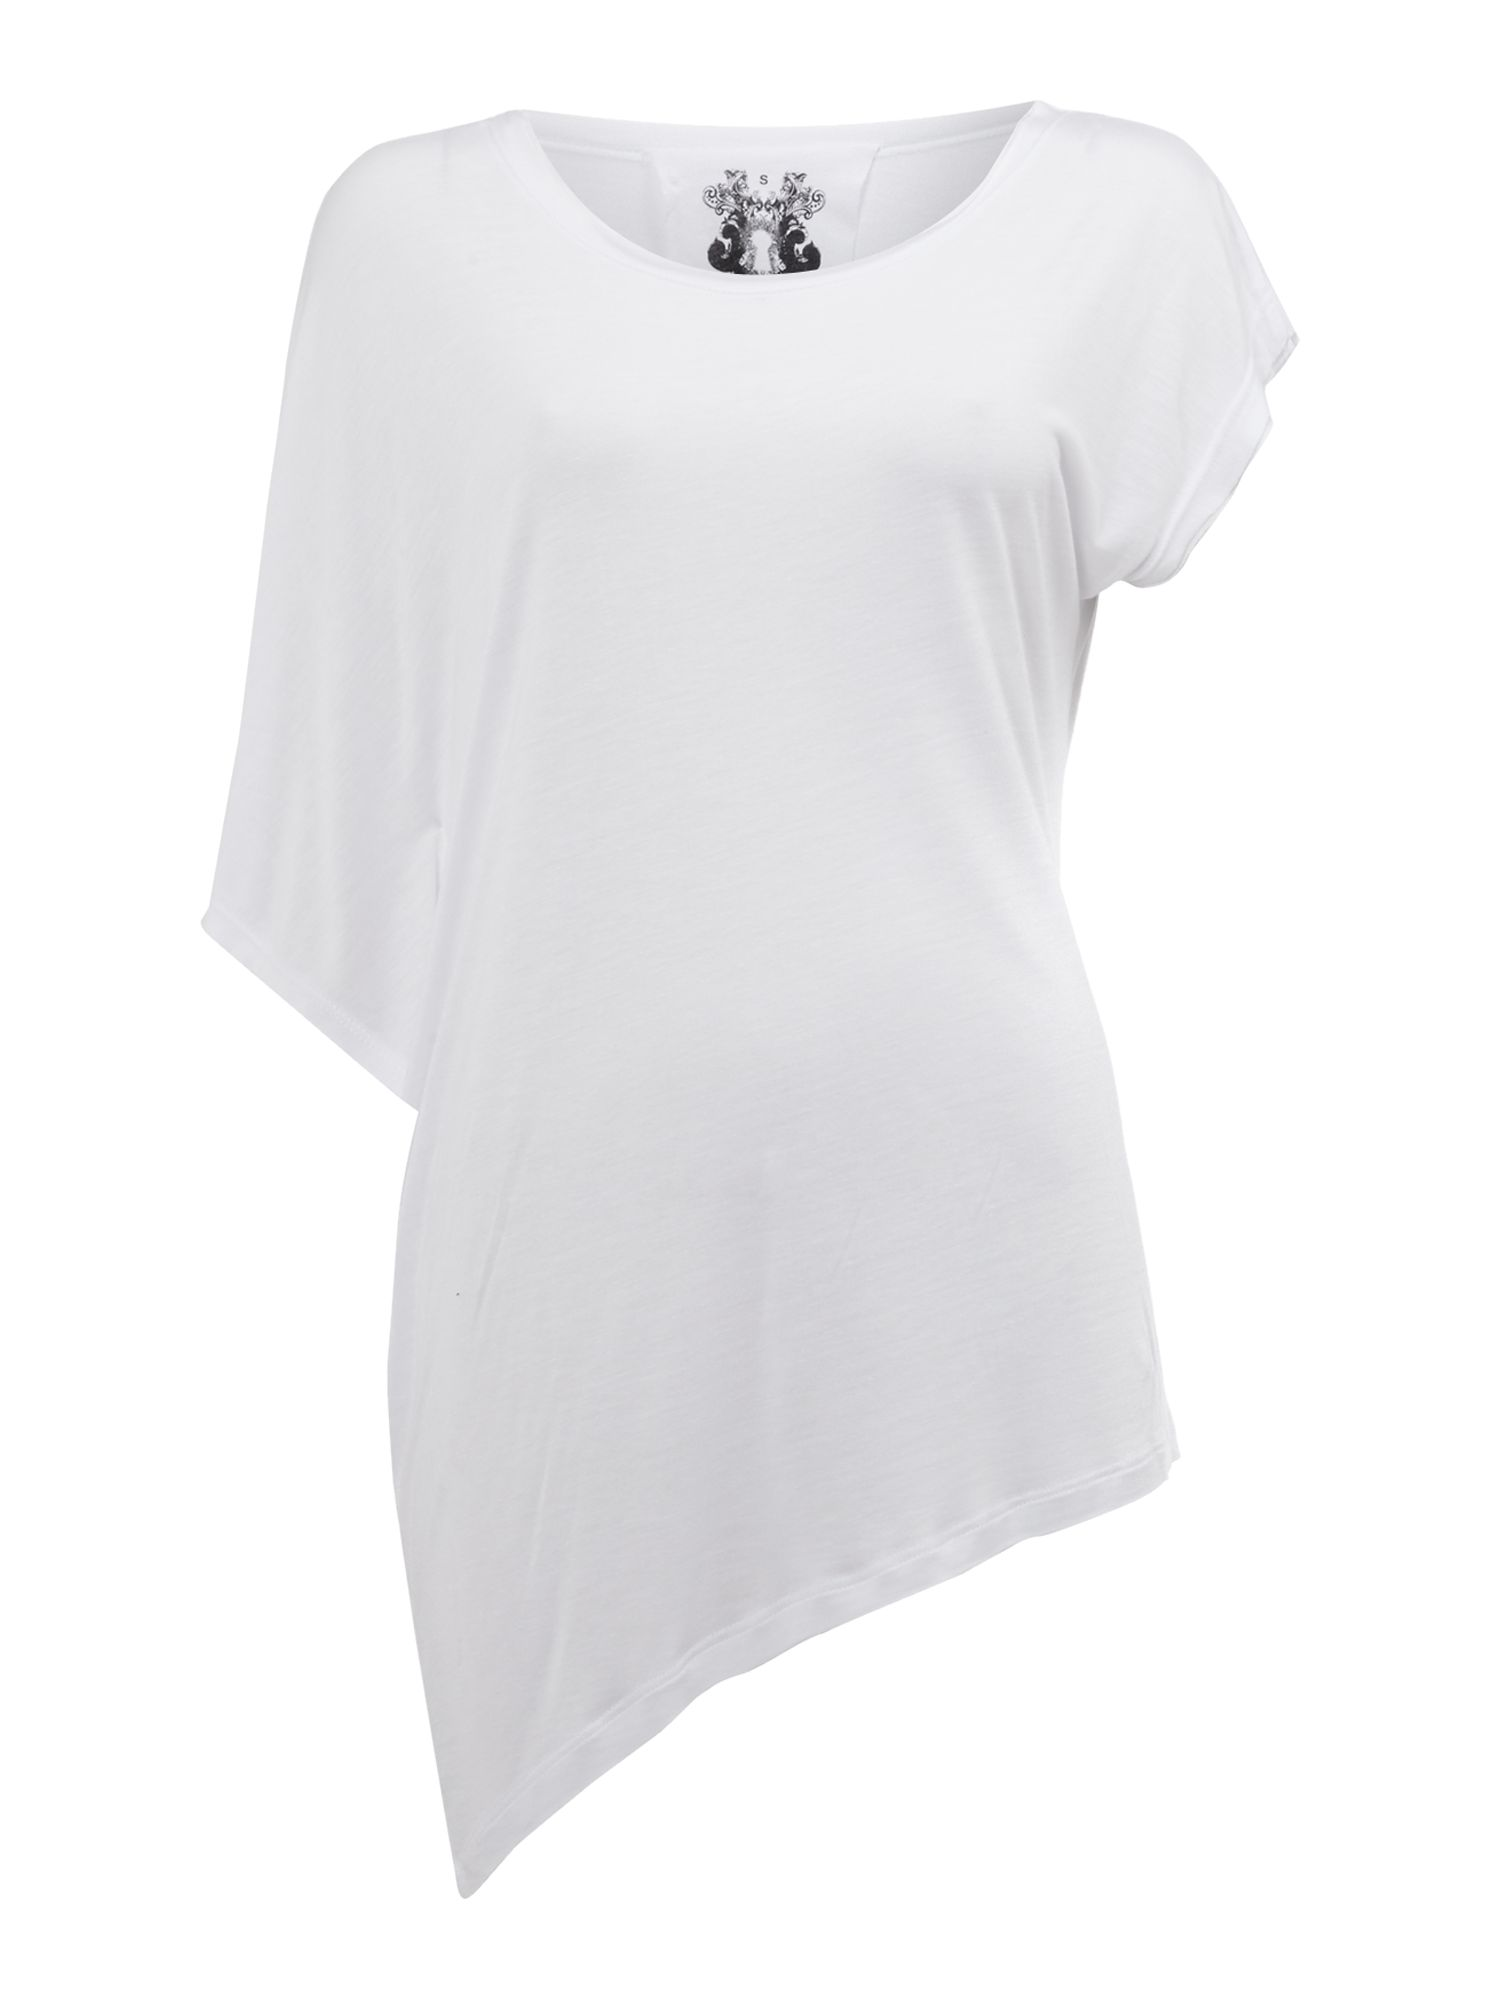 Oversized asymmetric tee